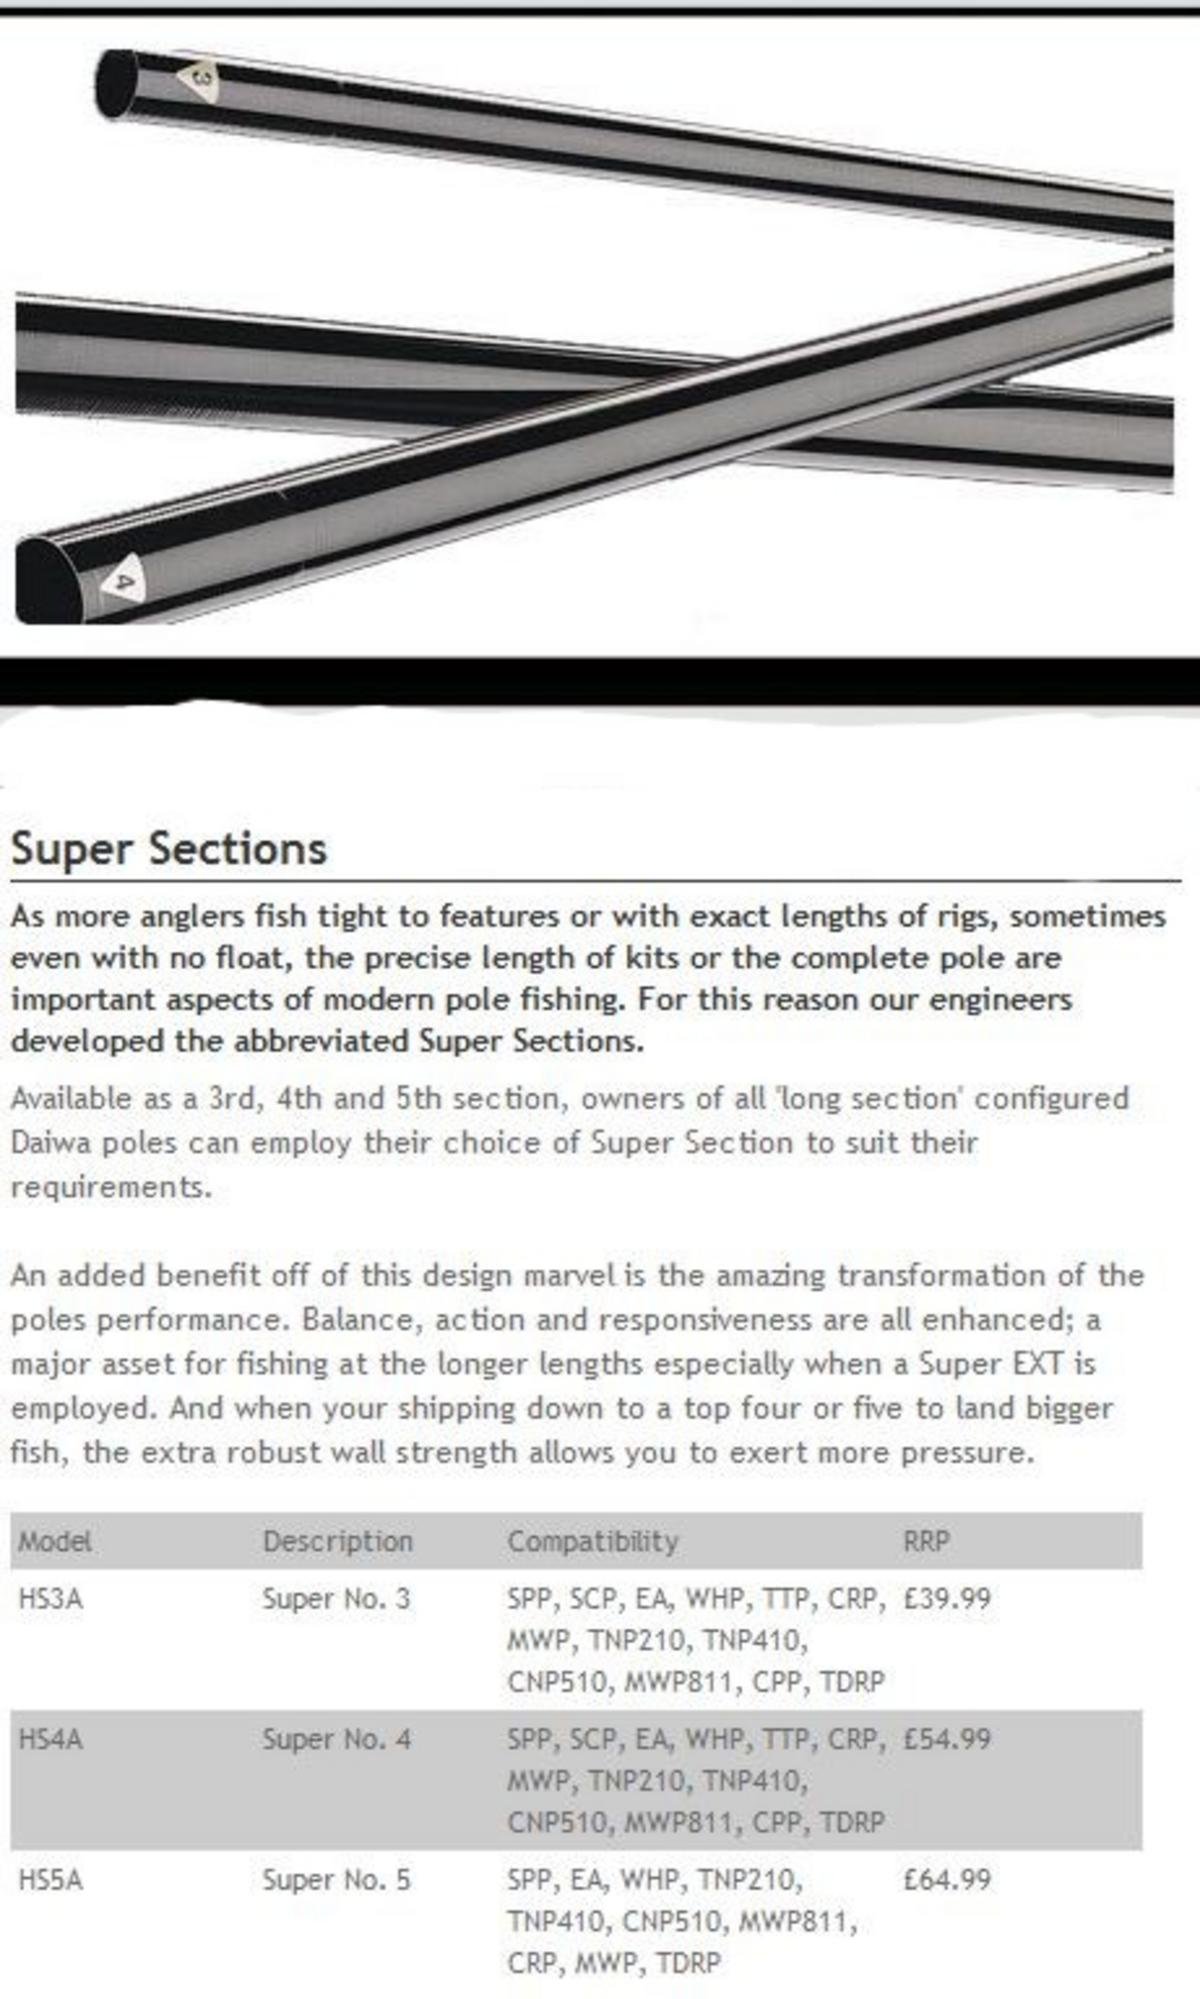 DAIWA SUPER EXTENSION 1.6MT Model No SPEX177 POLE KIT